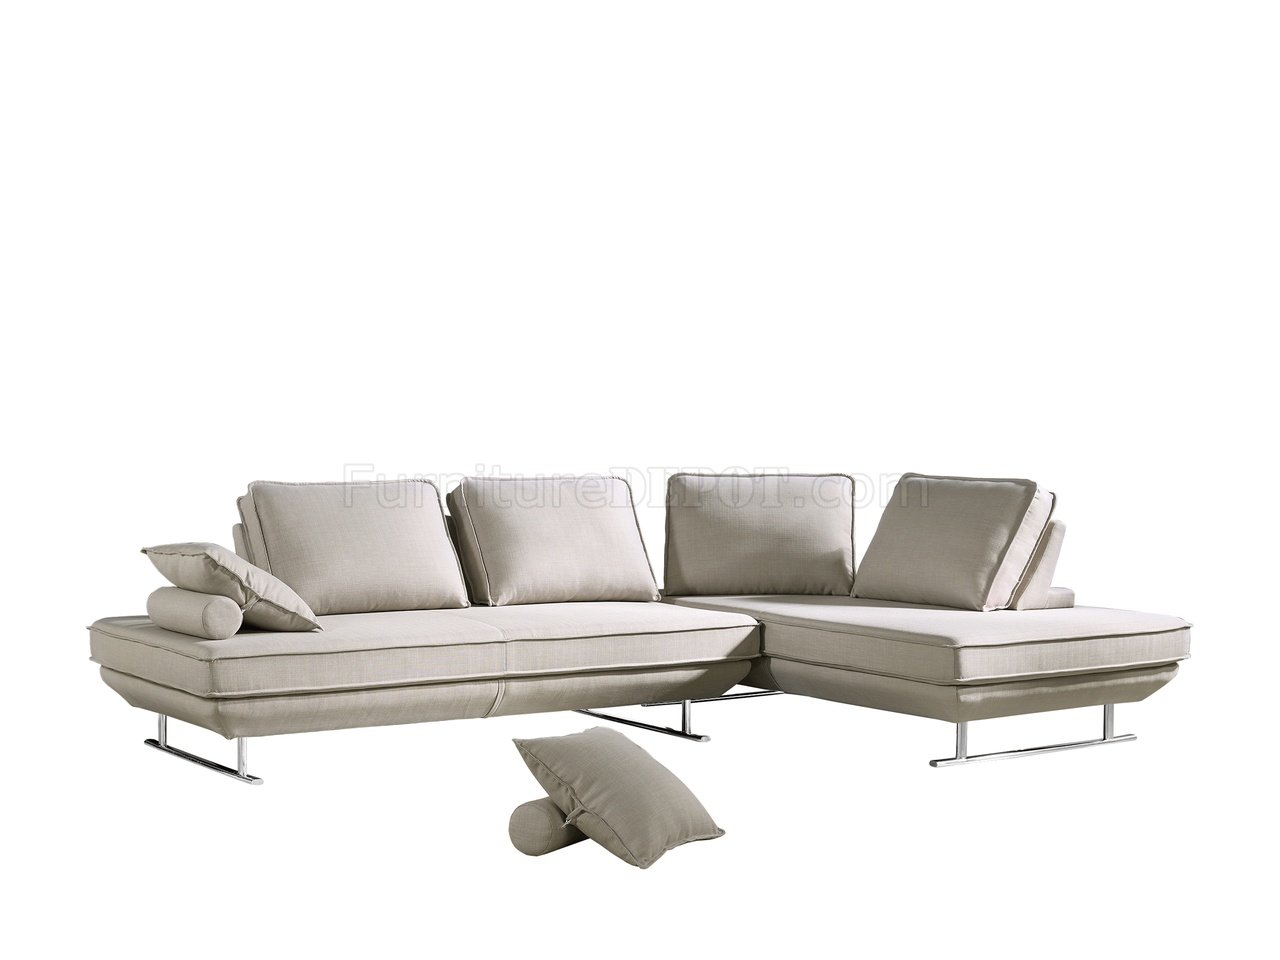 Amazing Bergamo Sectional Sofa In Beige Fabric By Esf Uwap Interior Chair Design Uwaporg